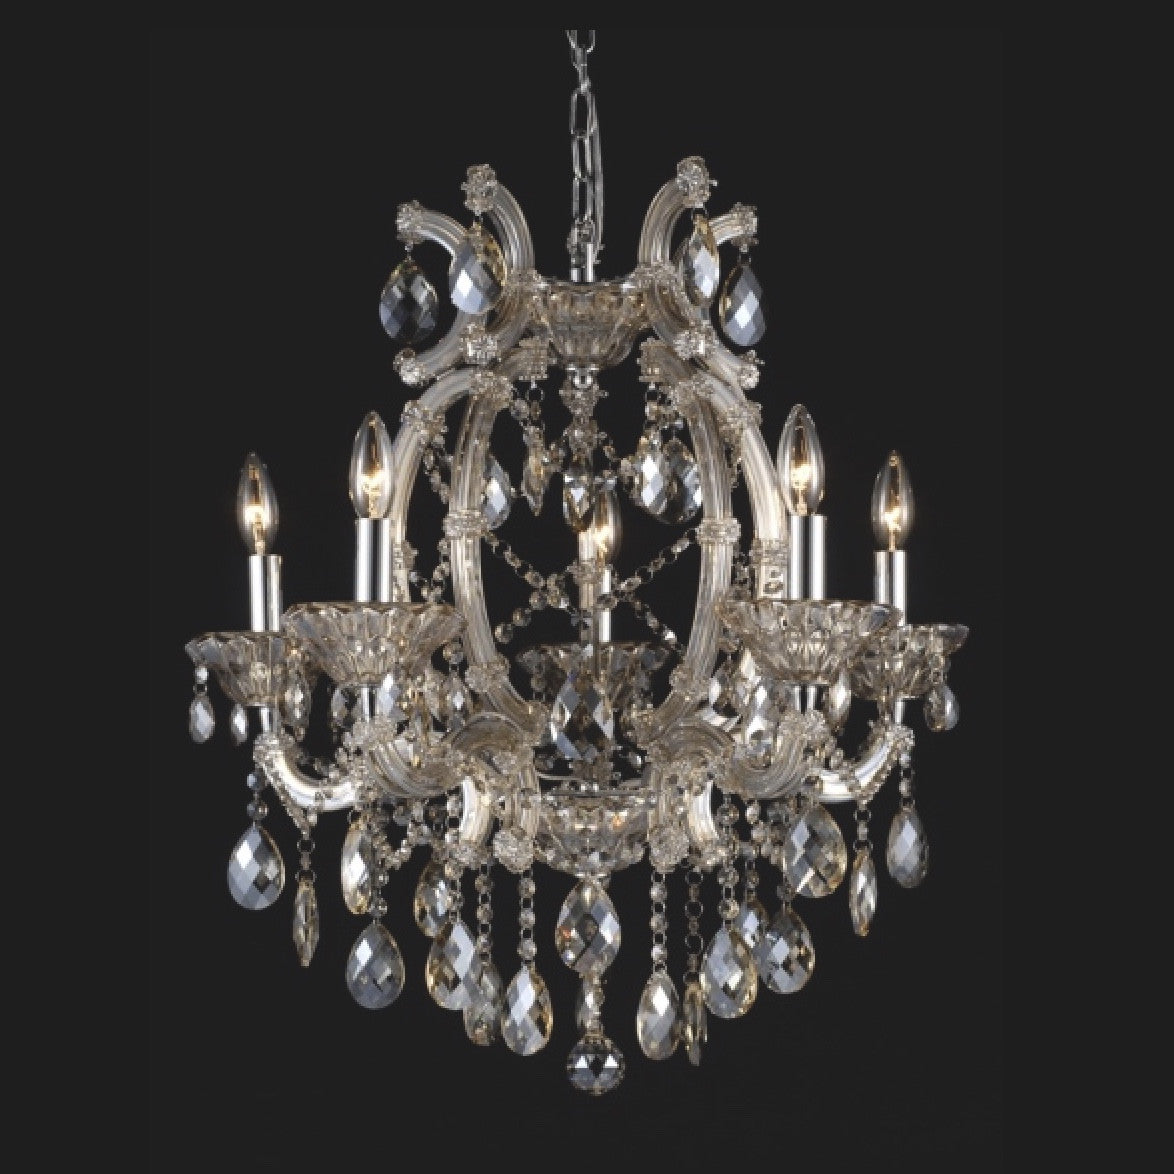 Champagne Crystal Chandelier - 5 Light, BI-Bethel International, Putti Fine Furnishings